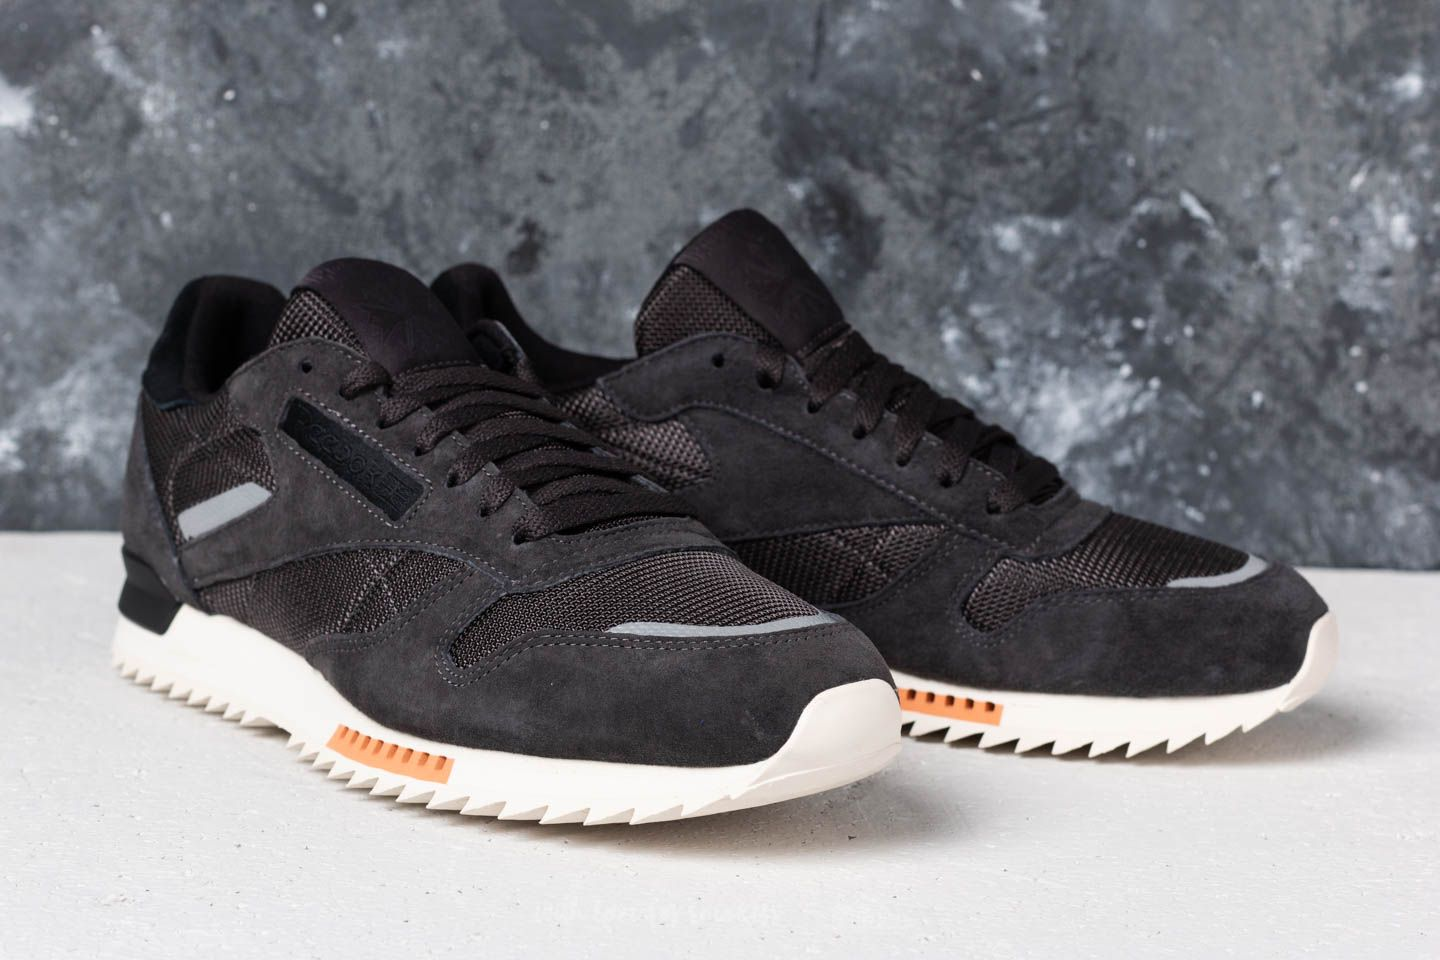 Reebok CL Leather Ripple SN Coal  Powder Gry  Classic White at a great price 7f2de49ab7f9